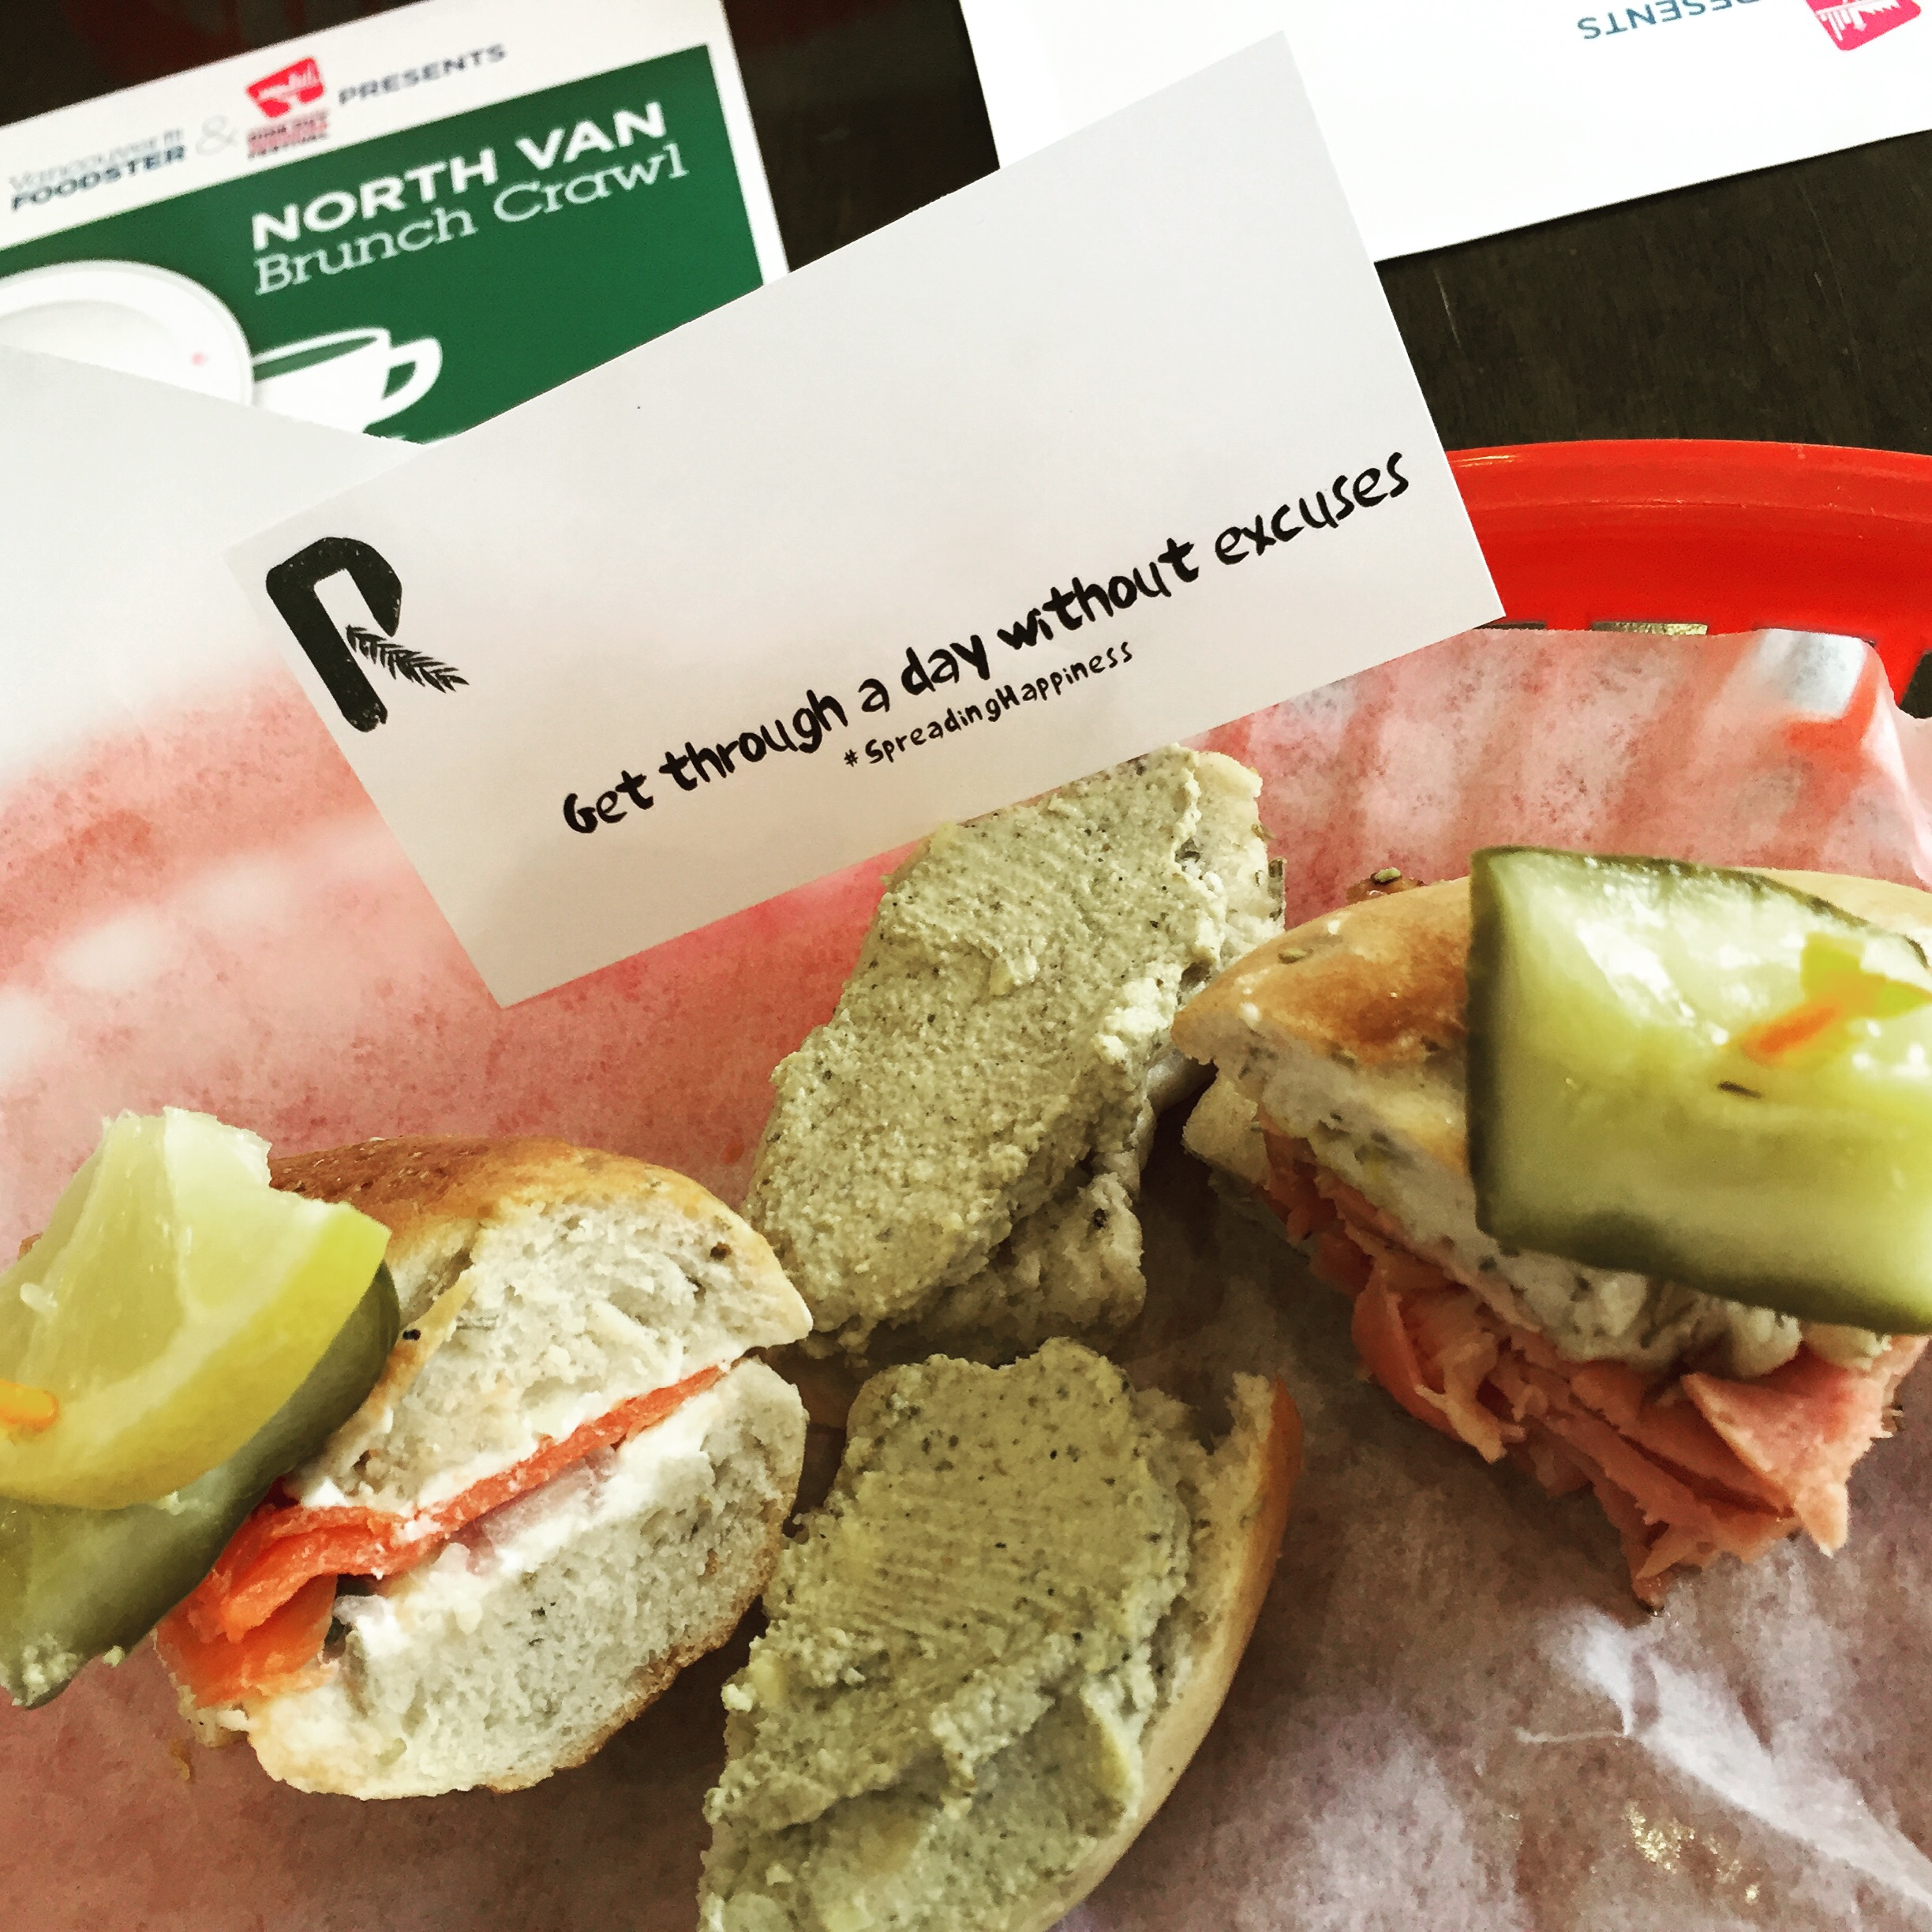 Dill pickle lox and cream cheese on poppyseed bagel with capers, red onion, lemon and dill pickle / vegan cashew spread on rosemary rocksalt bagel / Montreal smoked meat sandwich on sesame bagel with mustard